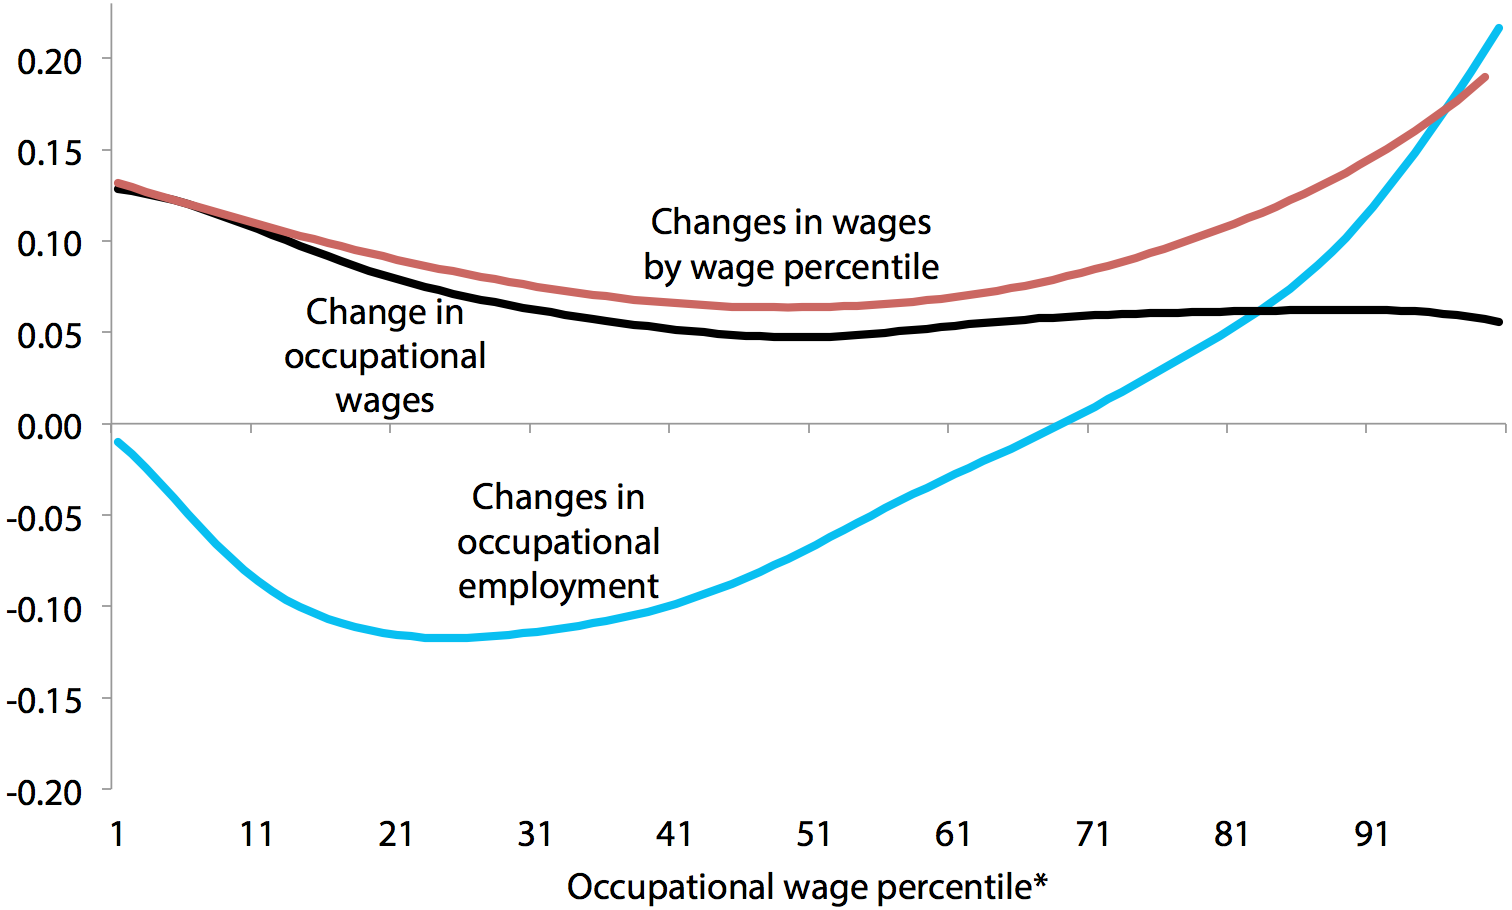 Smoothed changes in log employment share and log wage by occupational wage percentile, and smoothed changes in log wage by wage percentile, 1989–2000